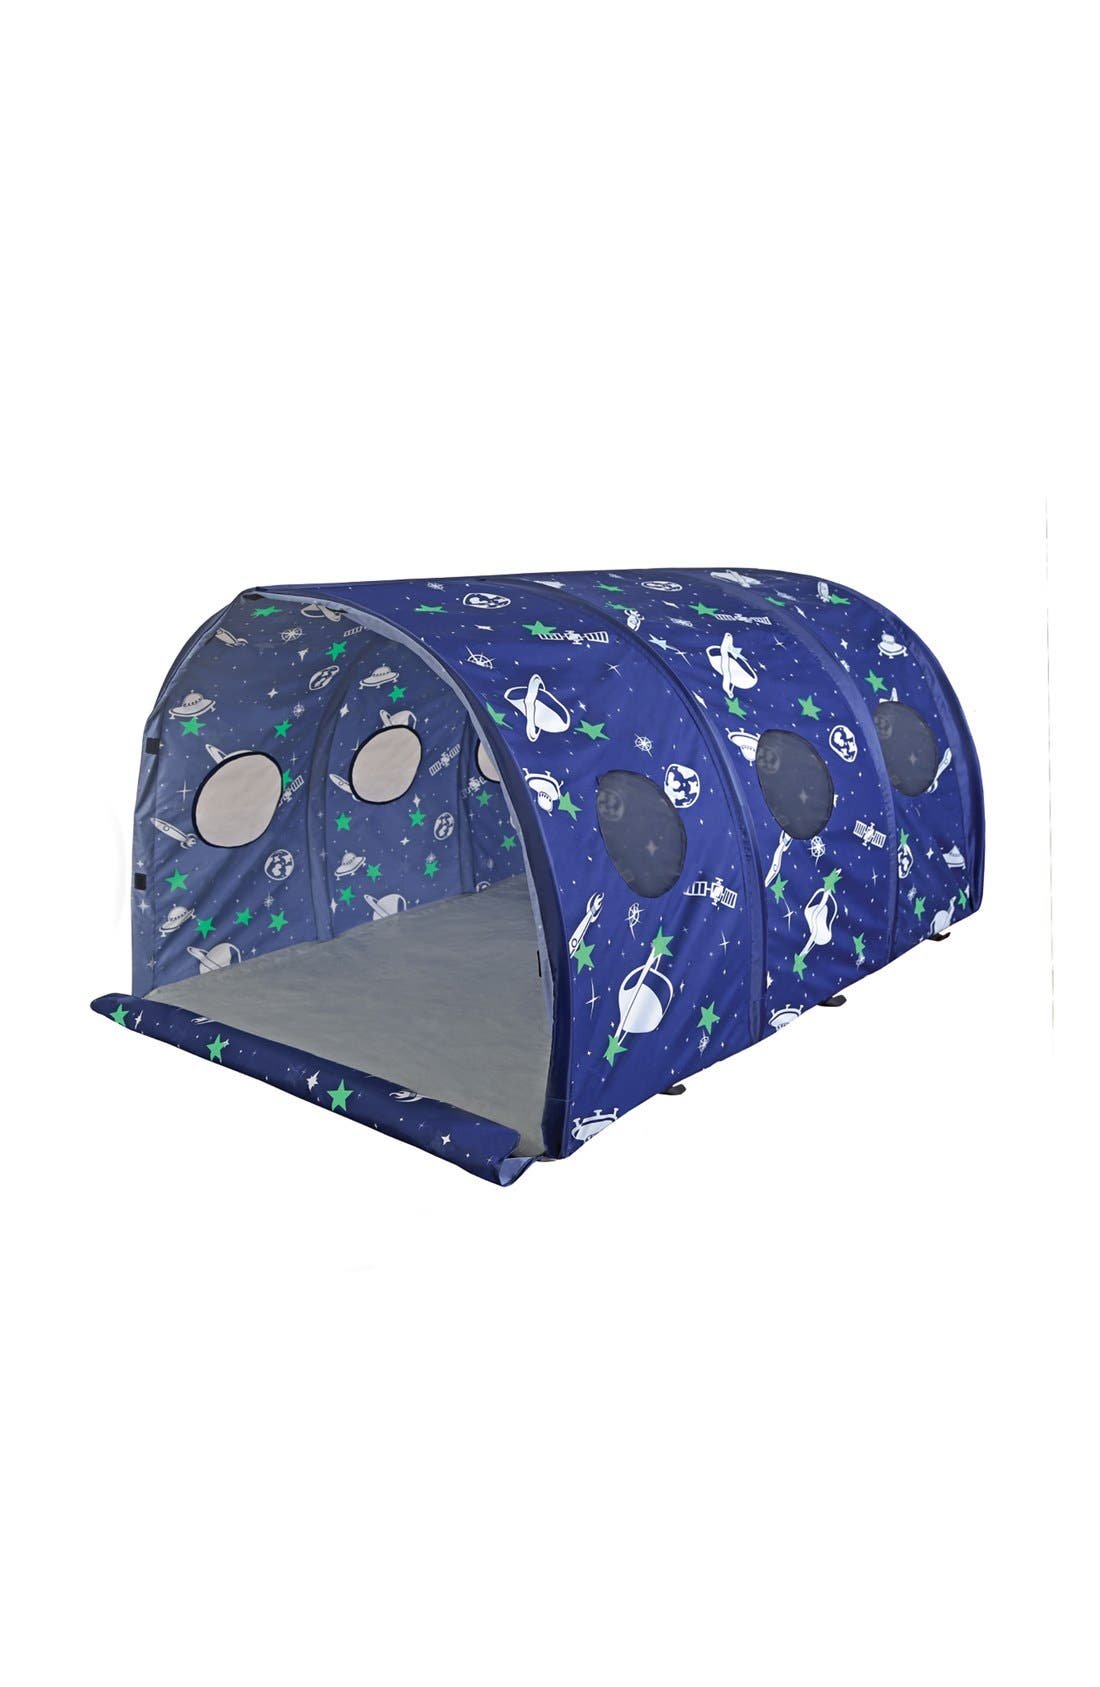 Main Image - Pacific Play Tents 'Space Capsule' Glow in the Dark Tent